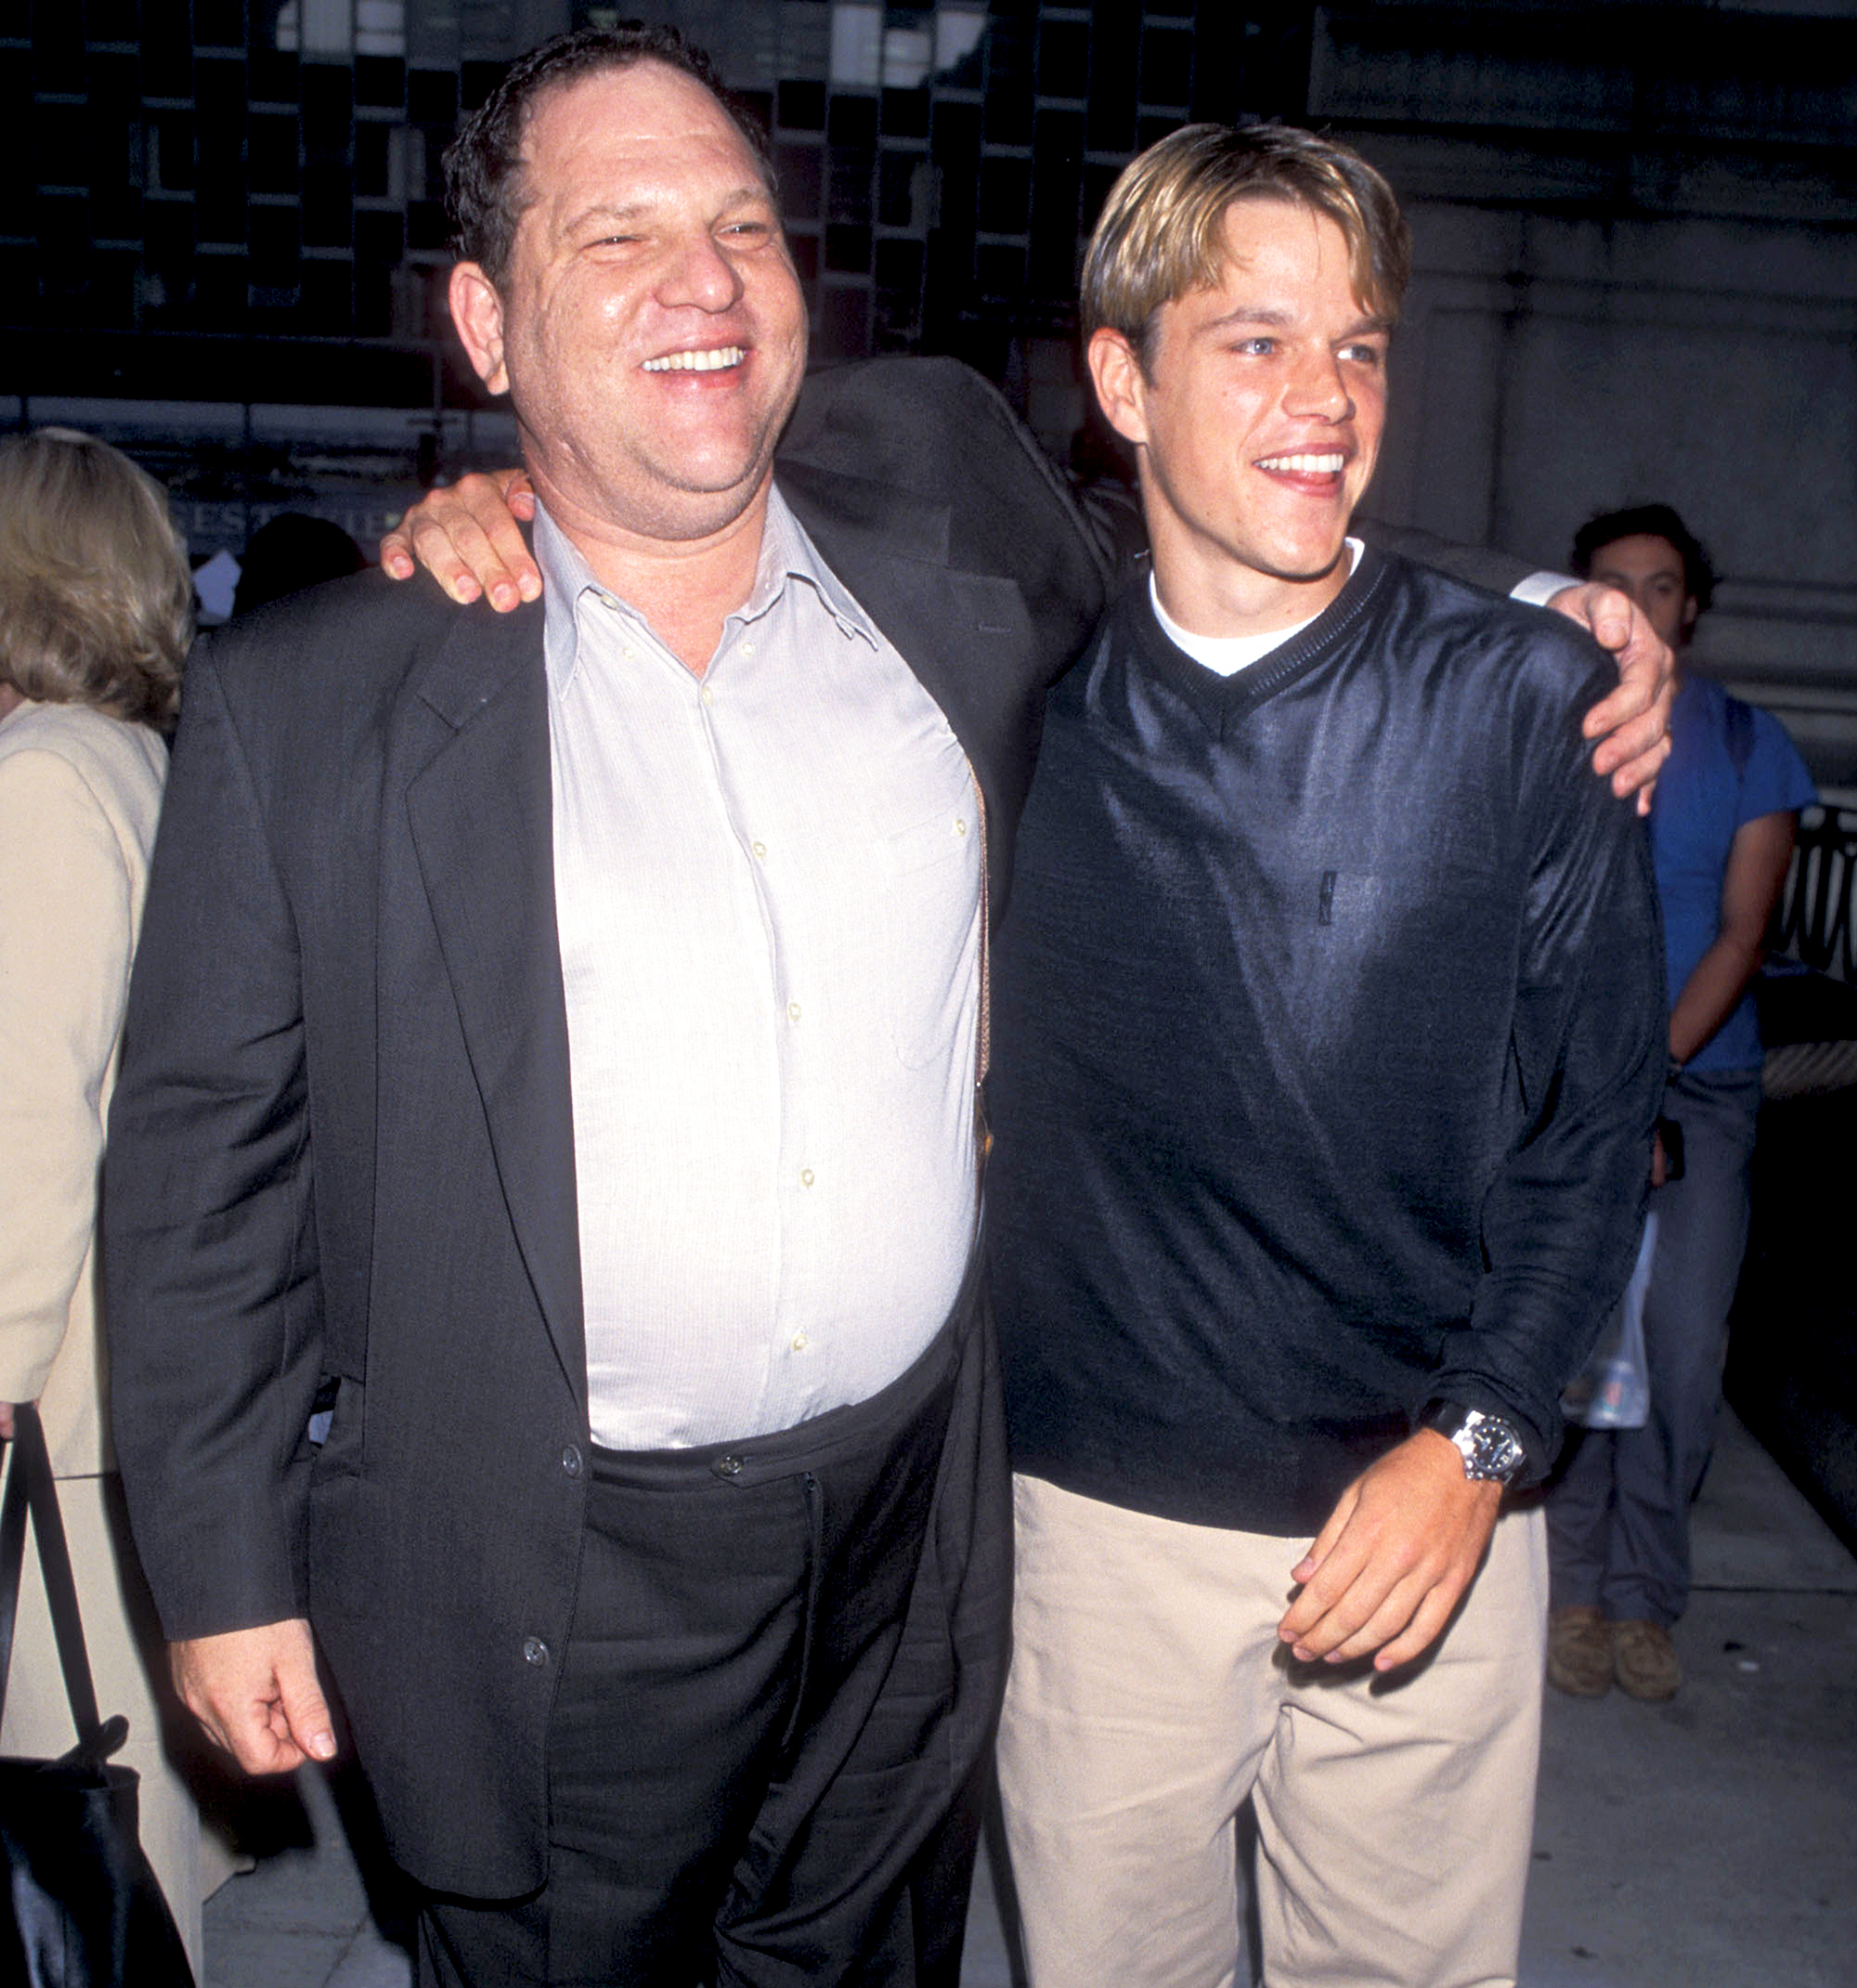 Harvey Weinstein and Matt Damon